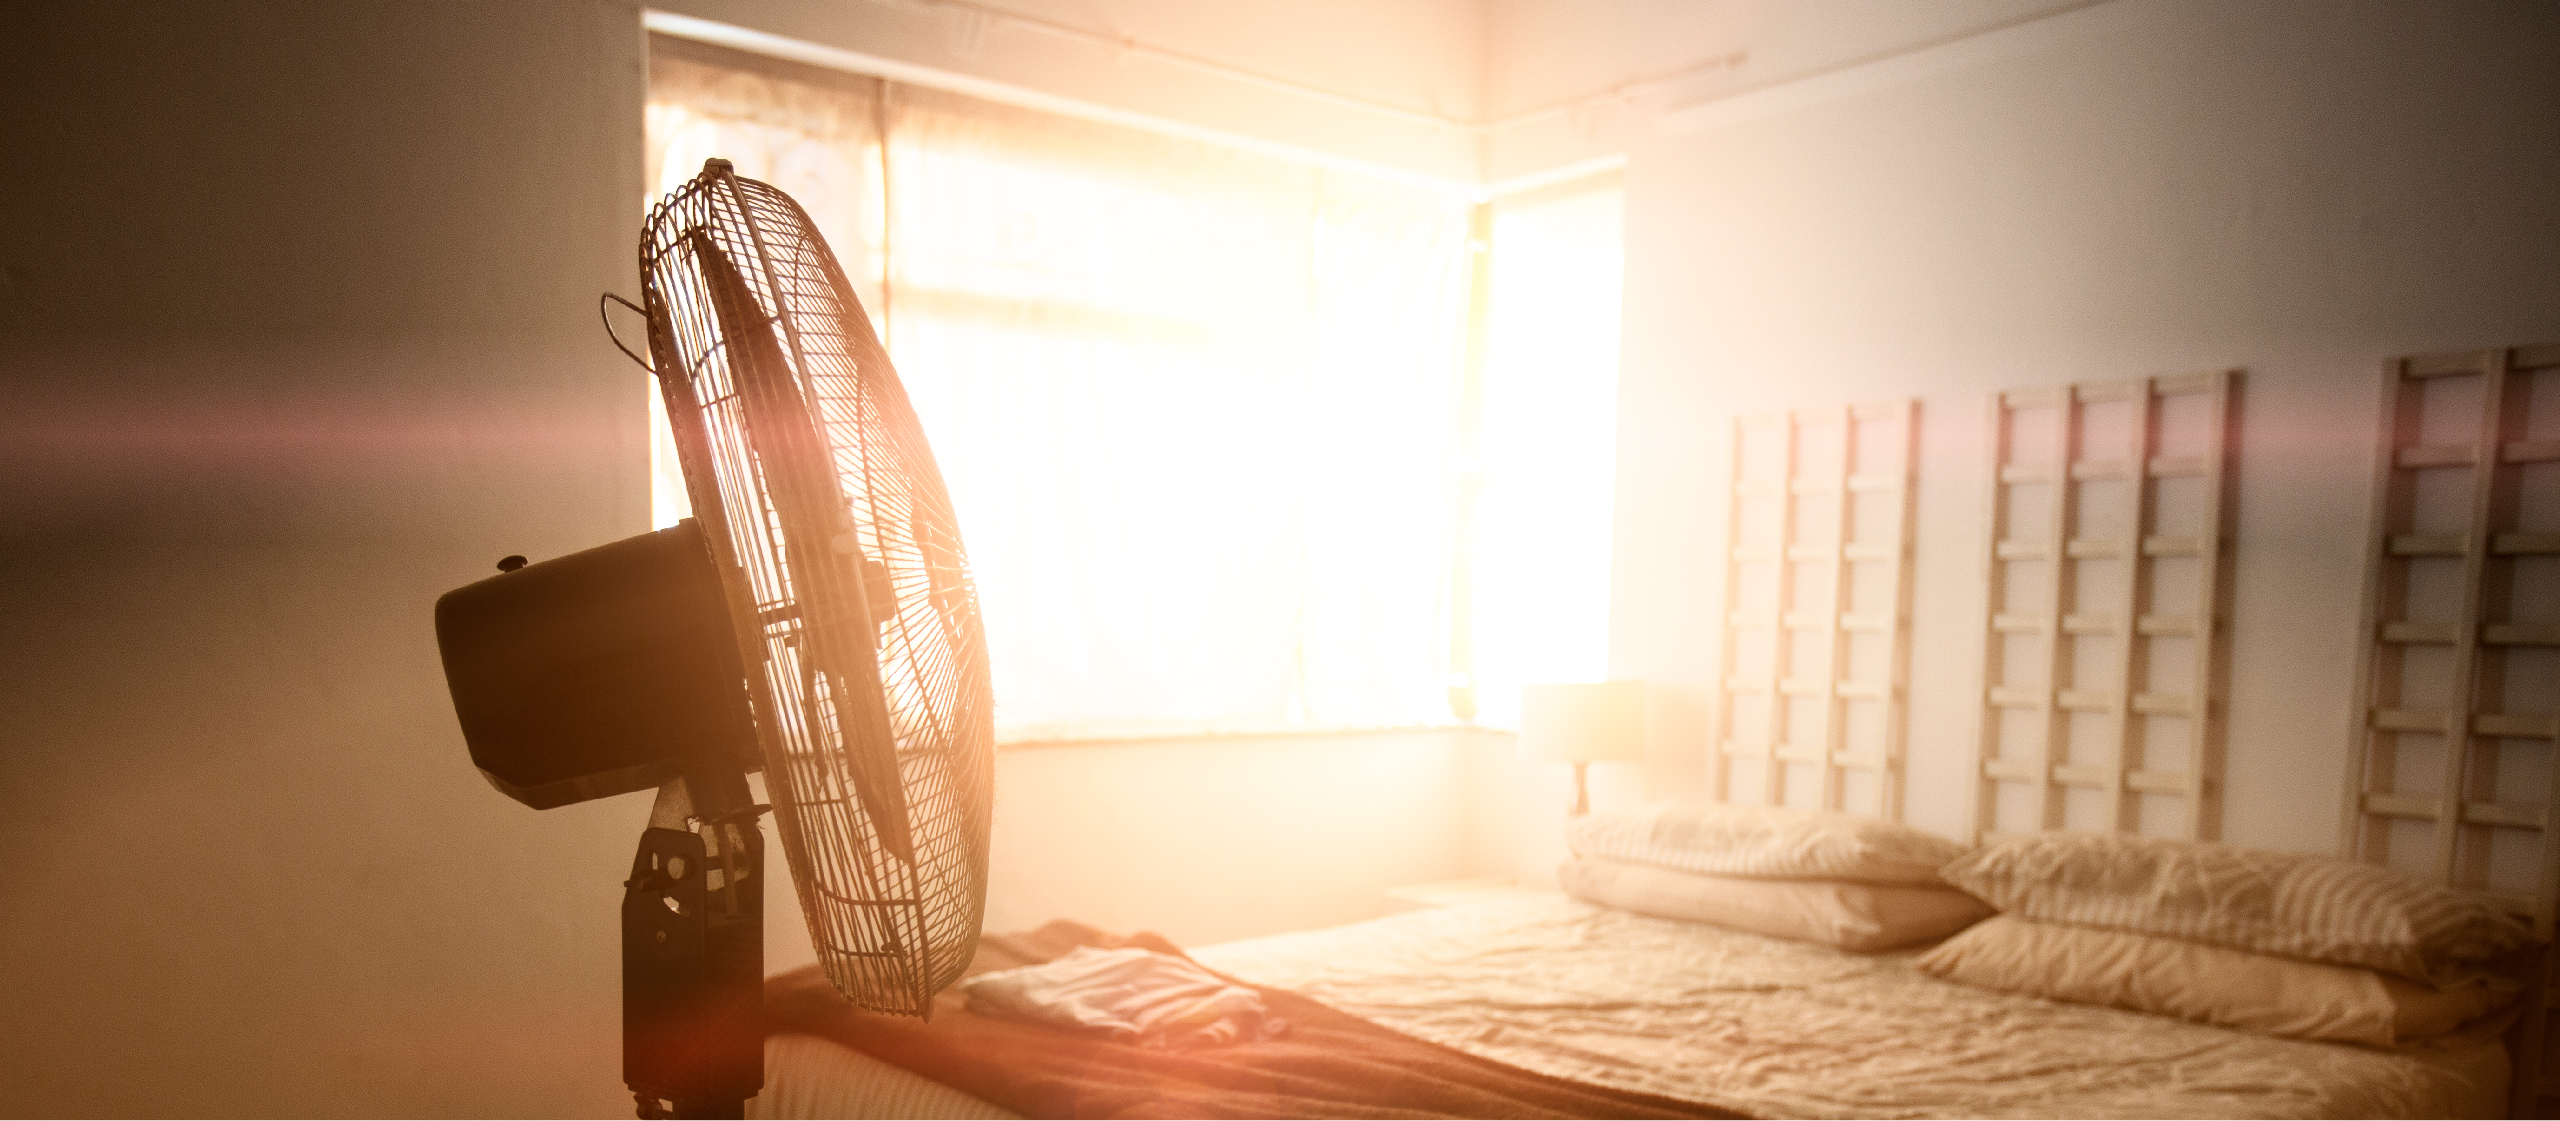 Extreme Heat and Your AC: How to Stay Cool While Being Eco-conscious